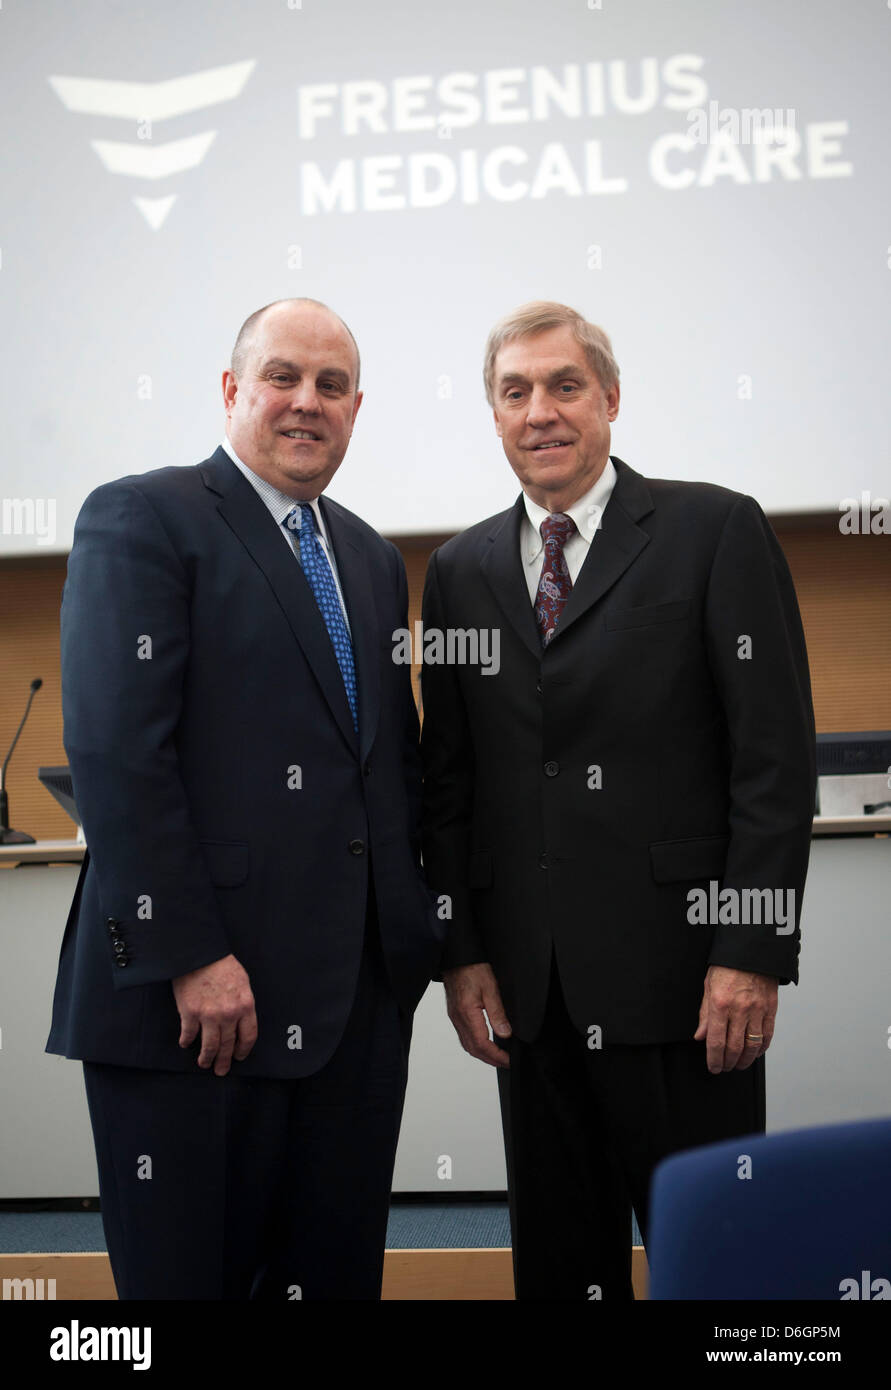 Fresenius Medical Care CEO Ben Lipps (R) and FMC deputy CEO Rice Powell attend a press conference - Stock Image